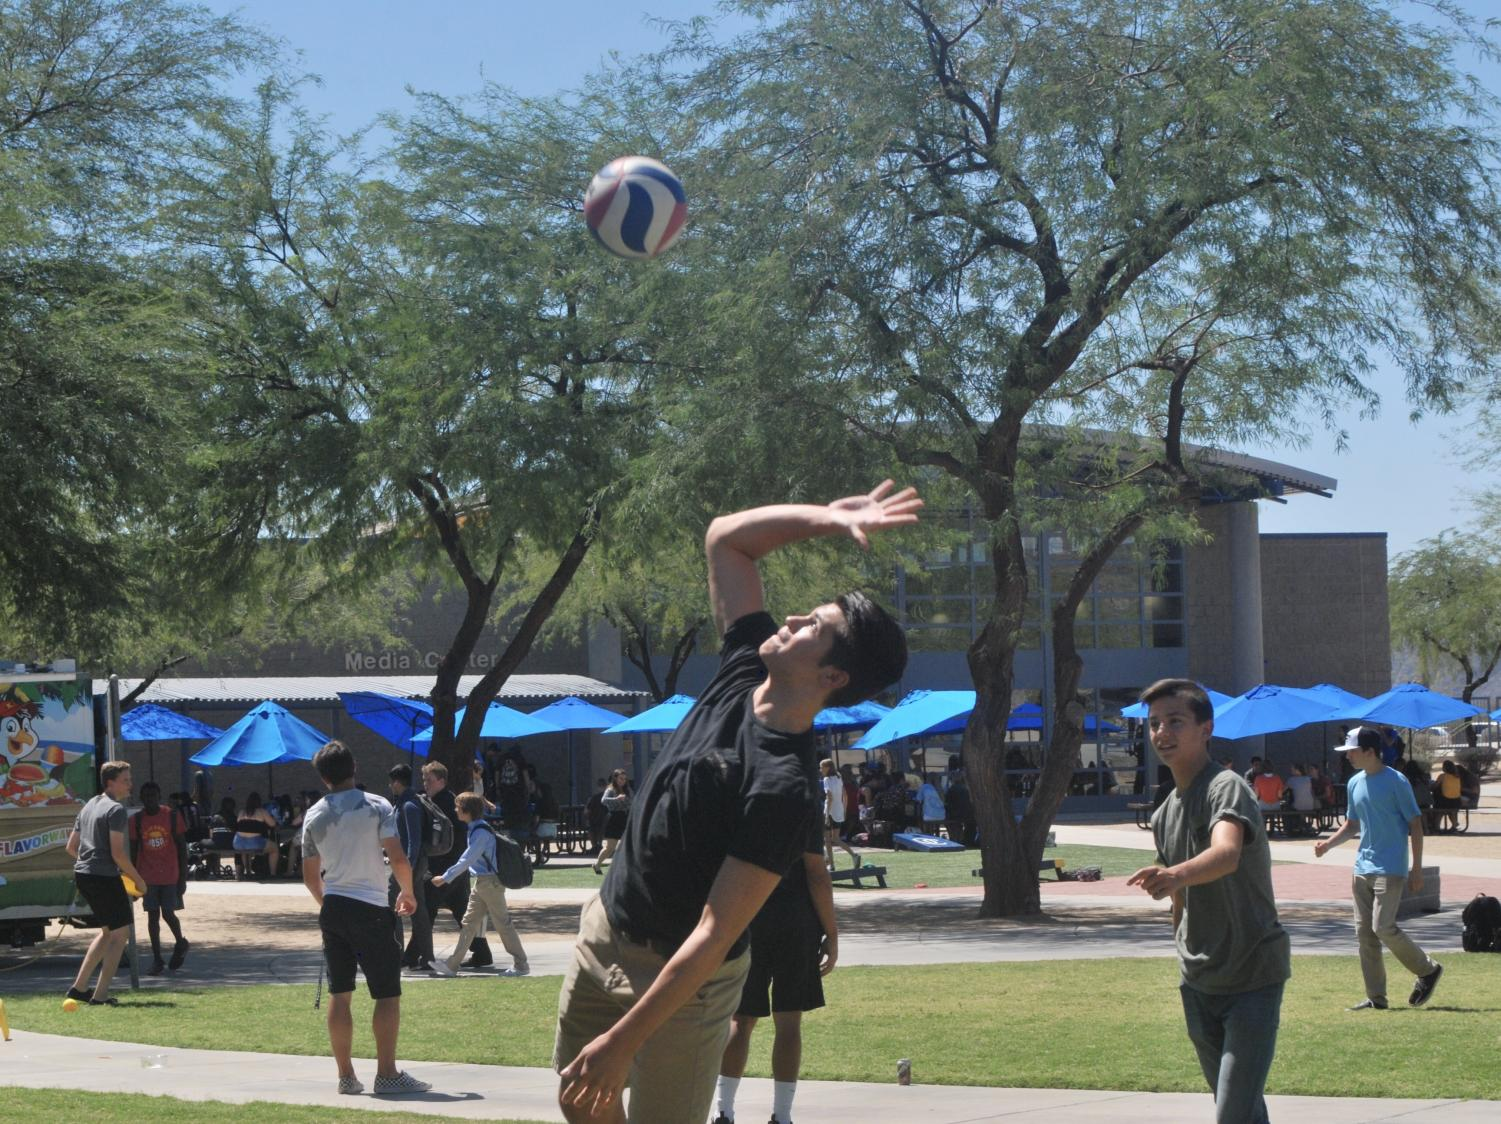 Sam Zaporowski passes Eagle Hour time by playing Volleyball near the center of campus